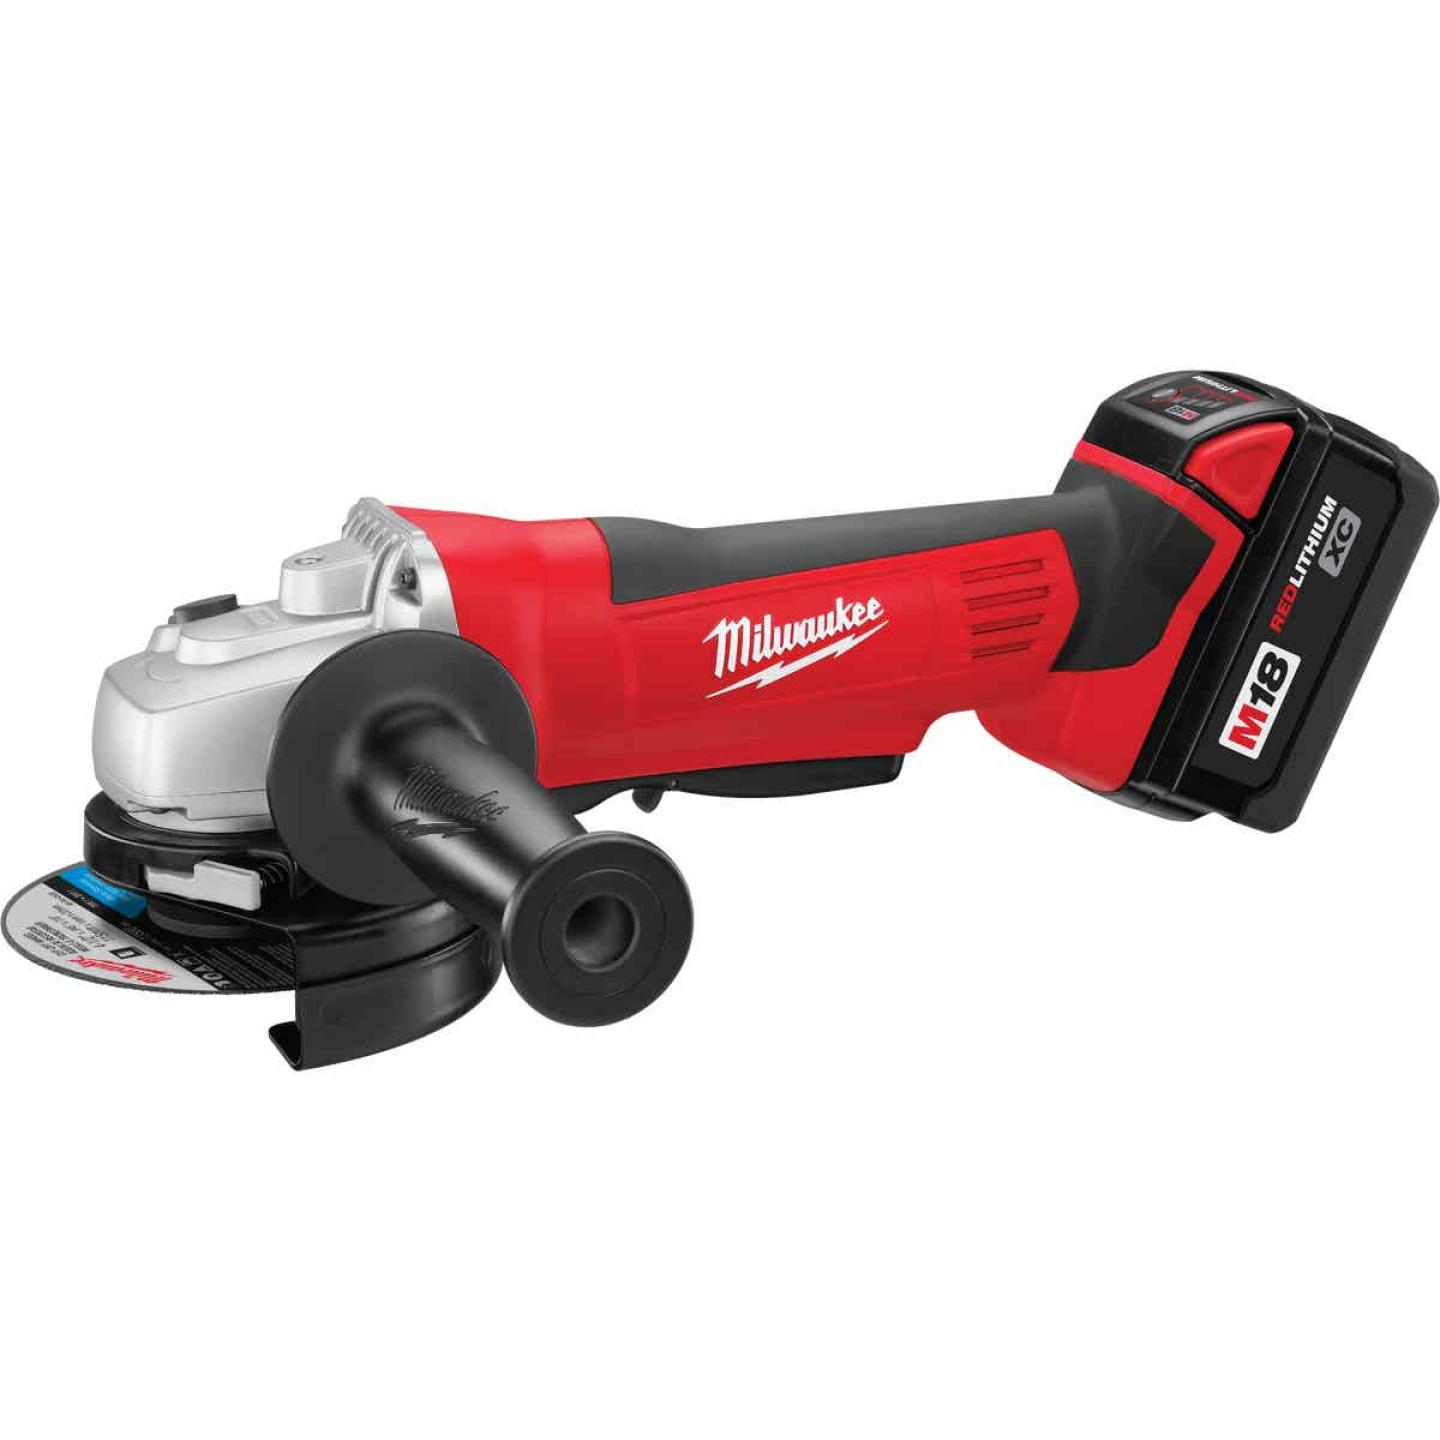 Milwaukee M18 18 Volt Lithium-Ion 4-1/2 In. Cordless Cut-Off Tool Kit Image 1